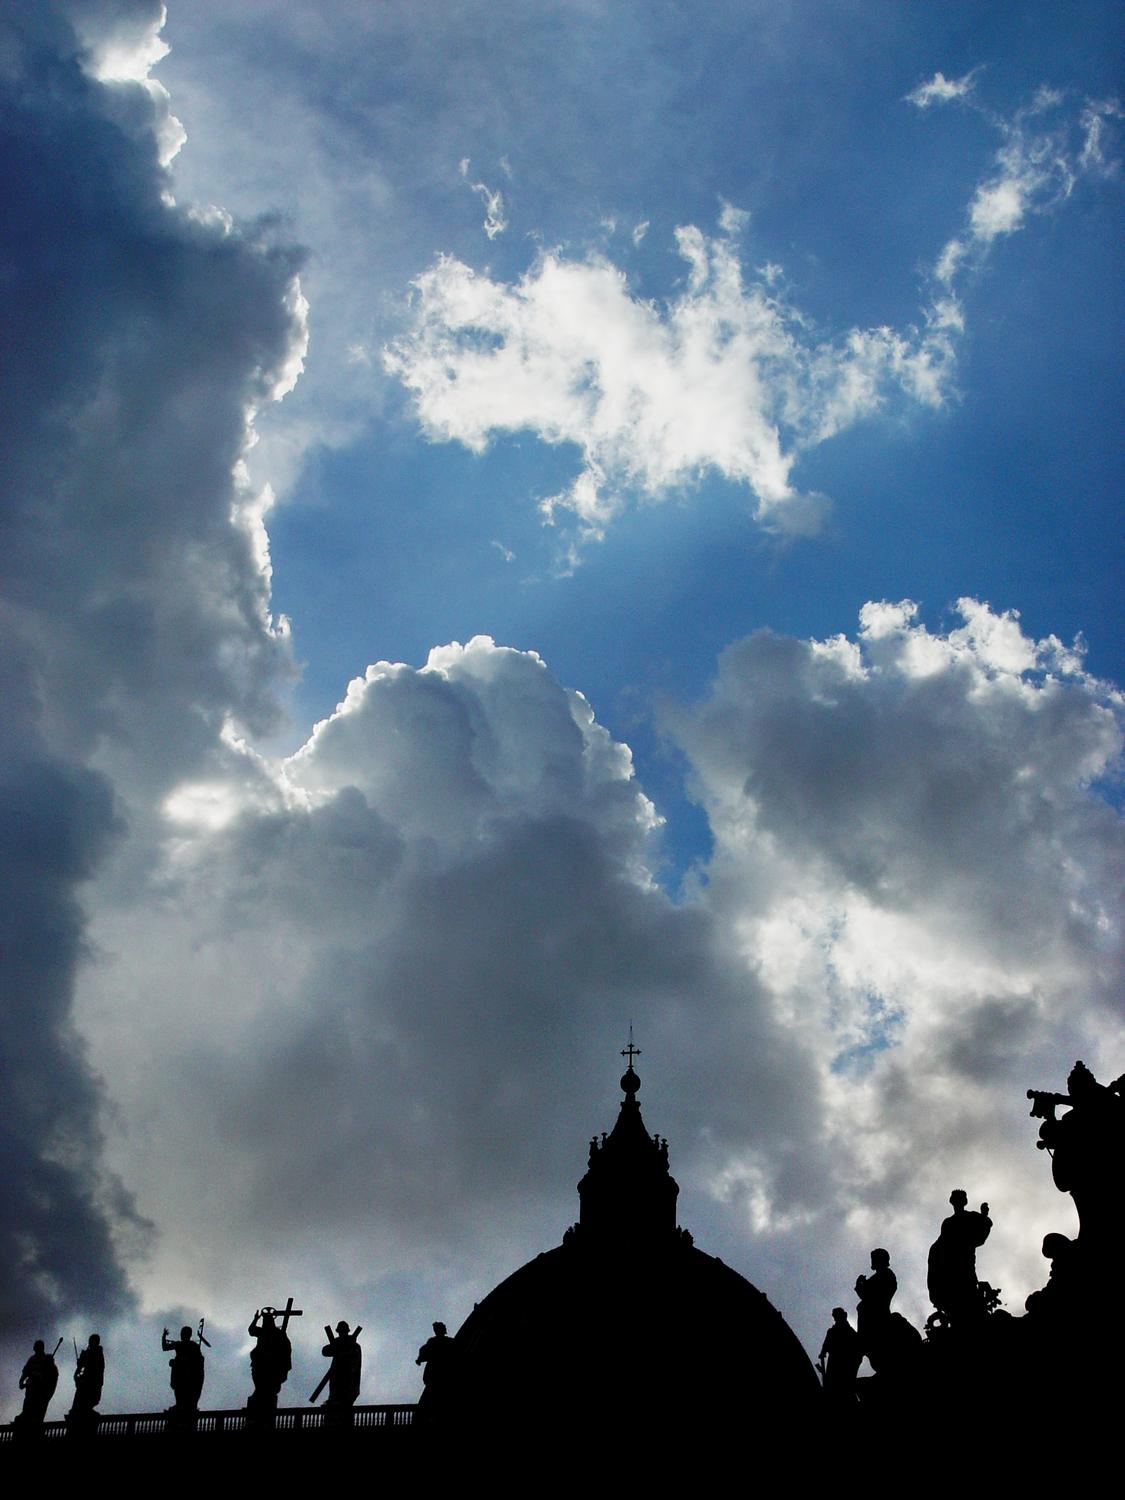 Saints beneath the clouds - dramatic clouds and sun behind the saints atop  Saint Peter's basilica in Rome - Saints beneath the clouds - Techno-Impressionist Museum - Techno-Impressionism - art - beautiful - photo photography picture - by Tony Karp